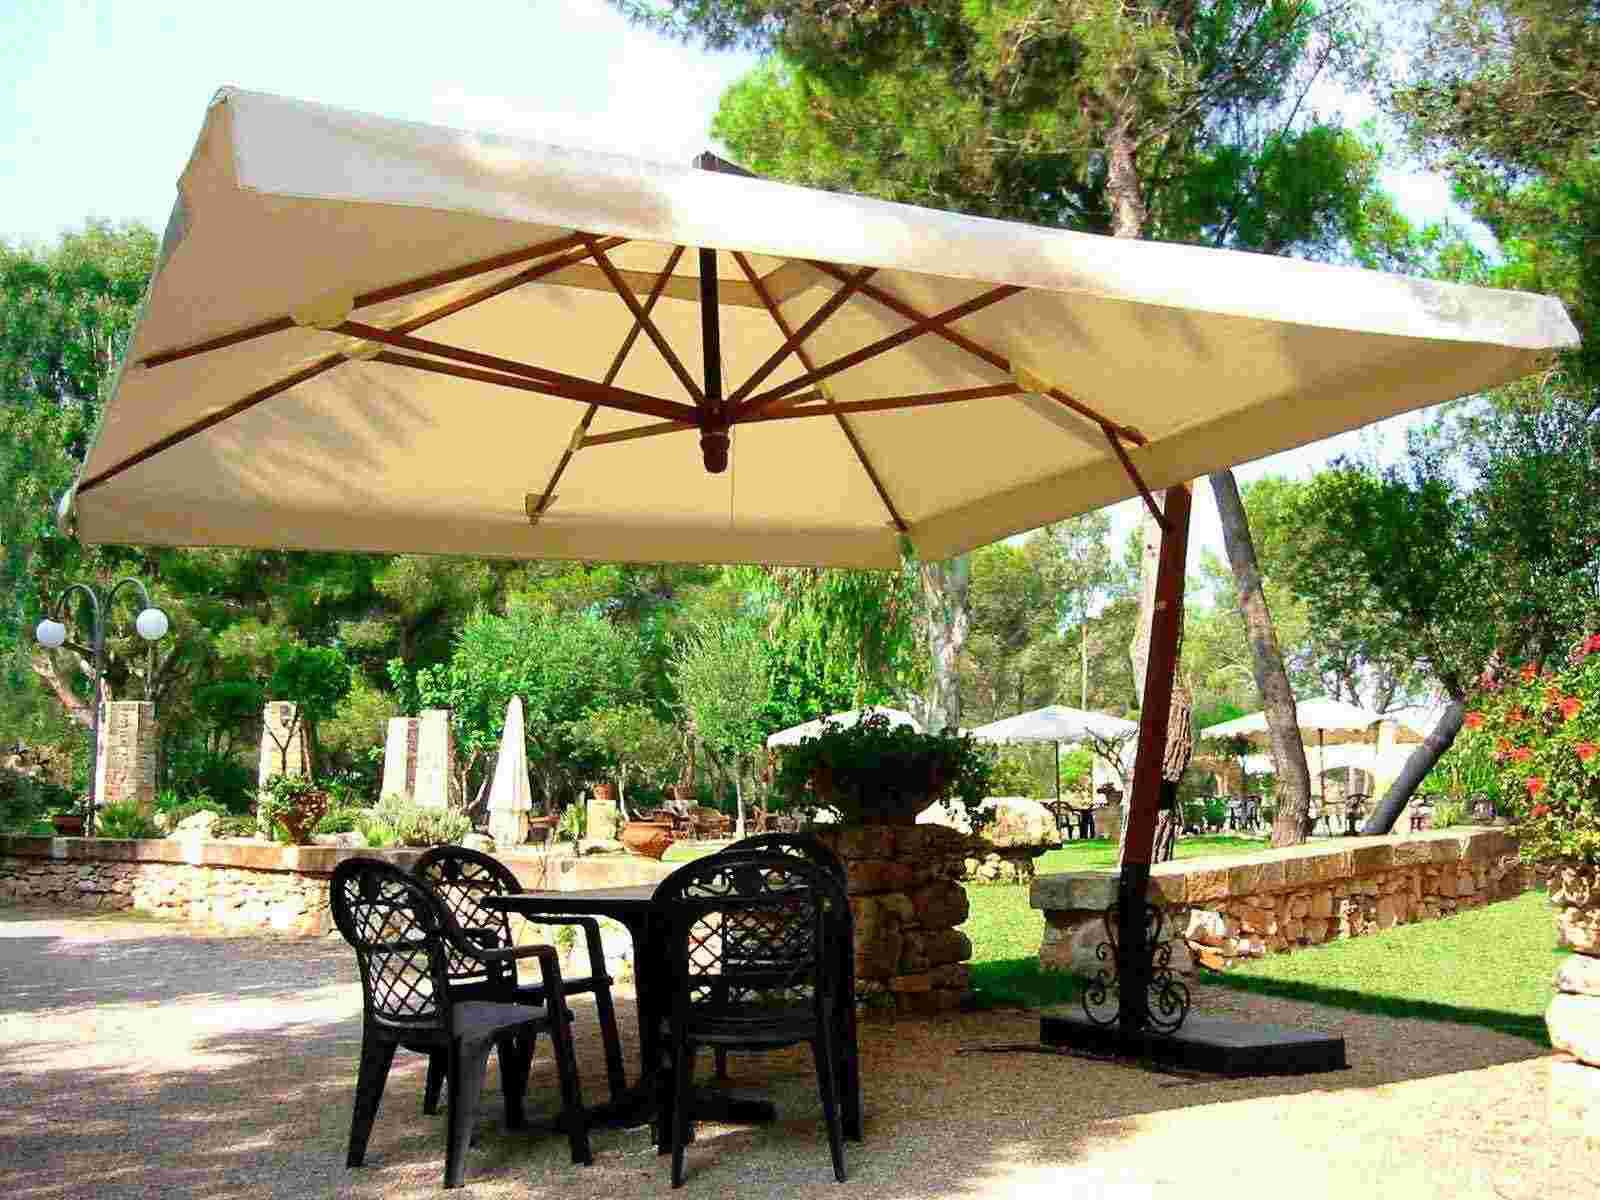 patio umbrella: a comprehensive care and maintenance guide Best Patio Umbrella